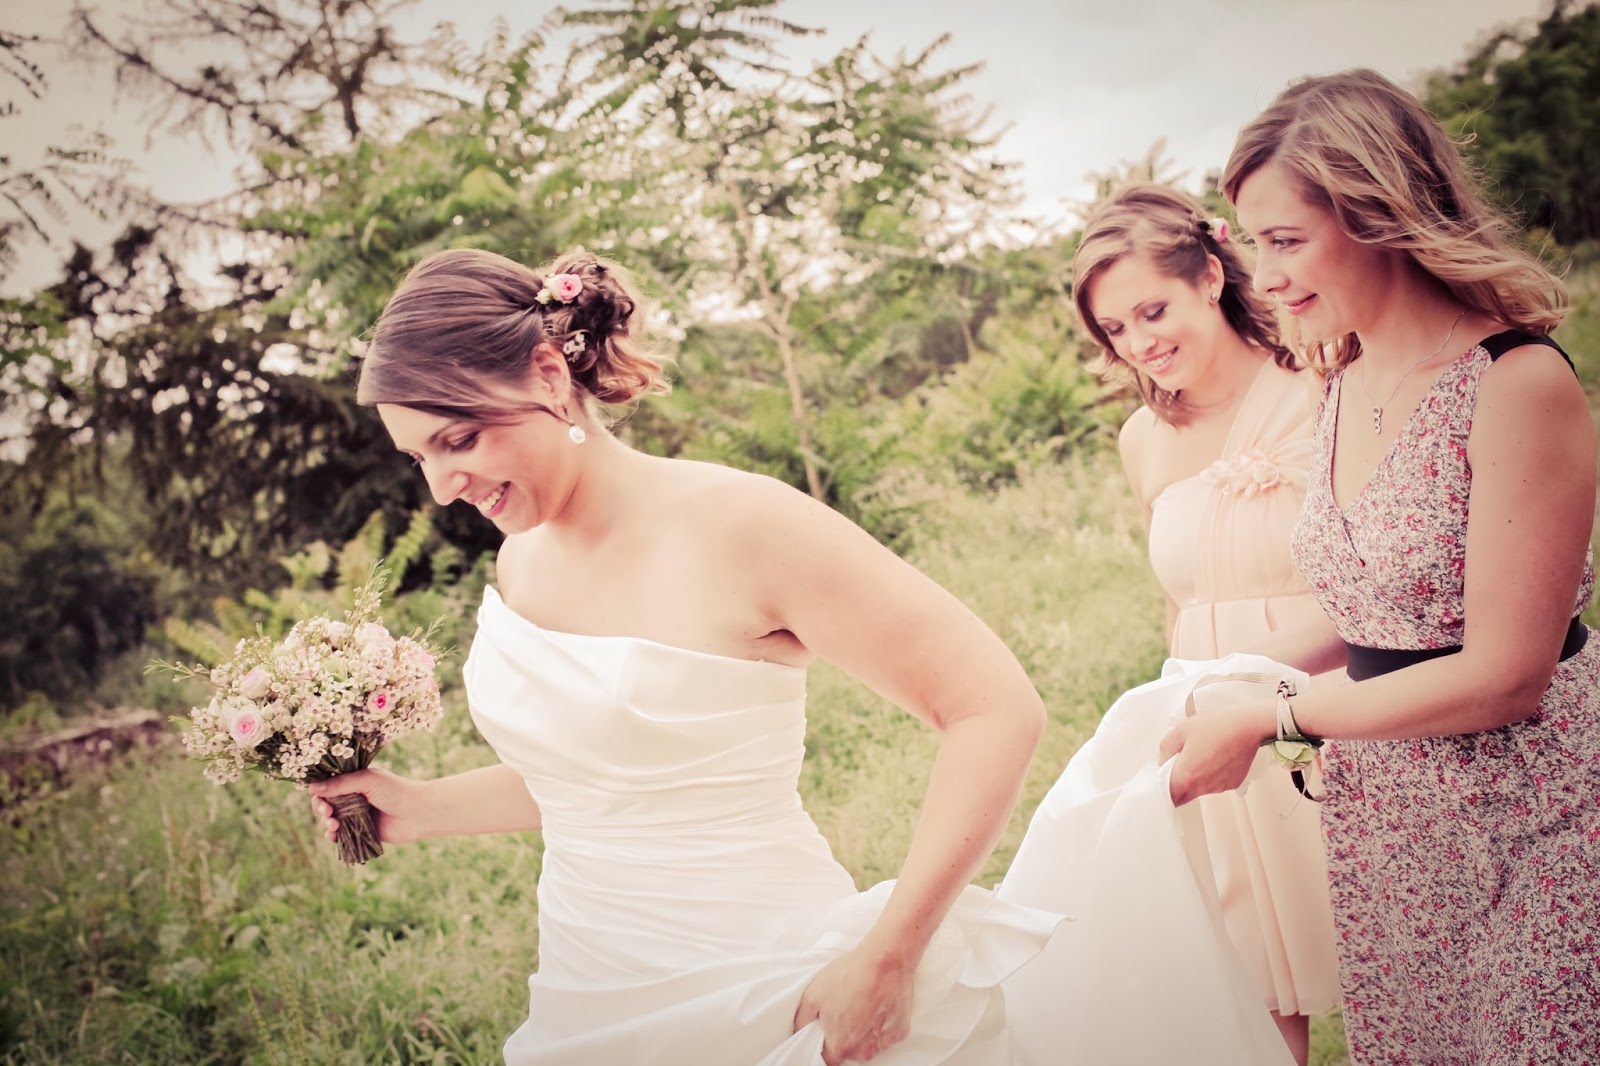 the bride and her bridesmaids walking, retro styled wedding photography by Elisabeth Perotin